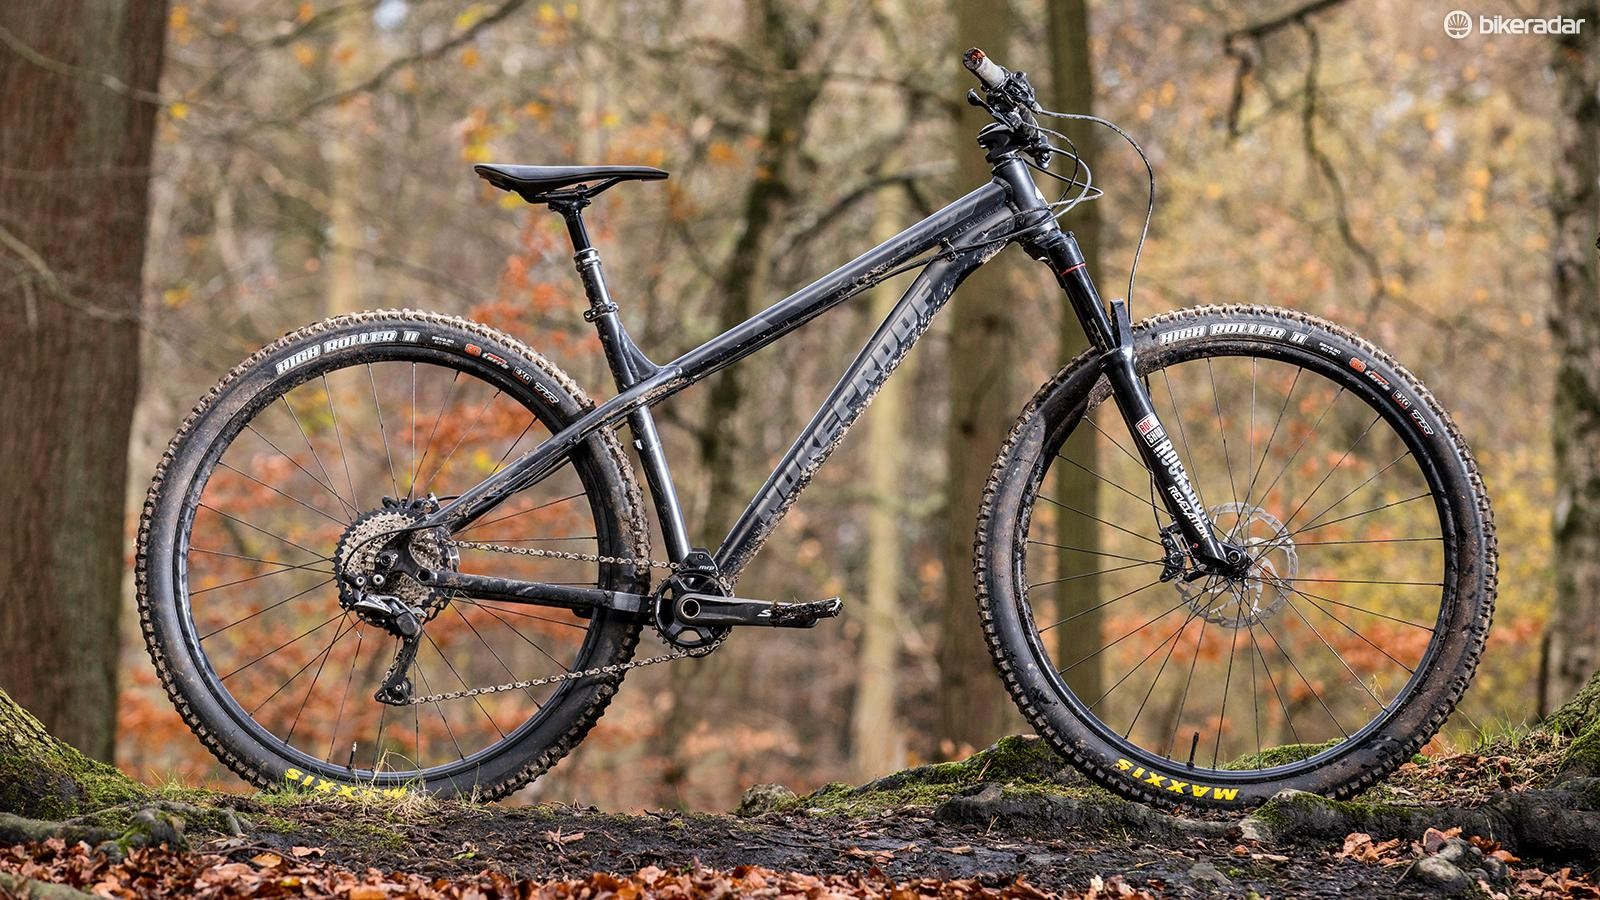 Nukeproof's Scout 29 is a very capable bike